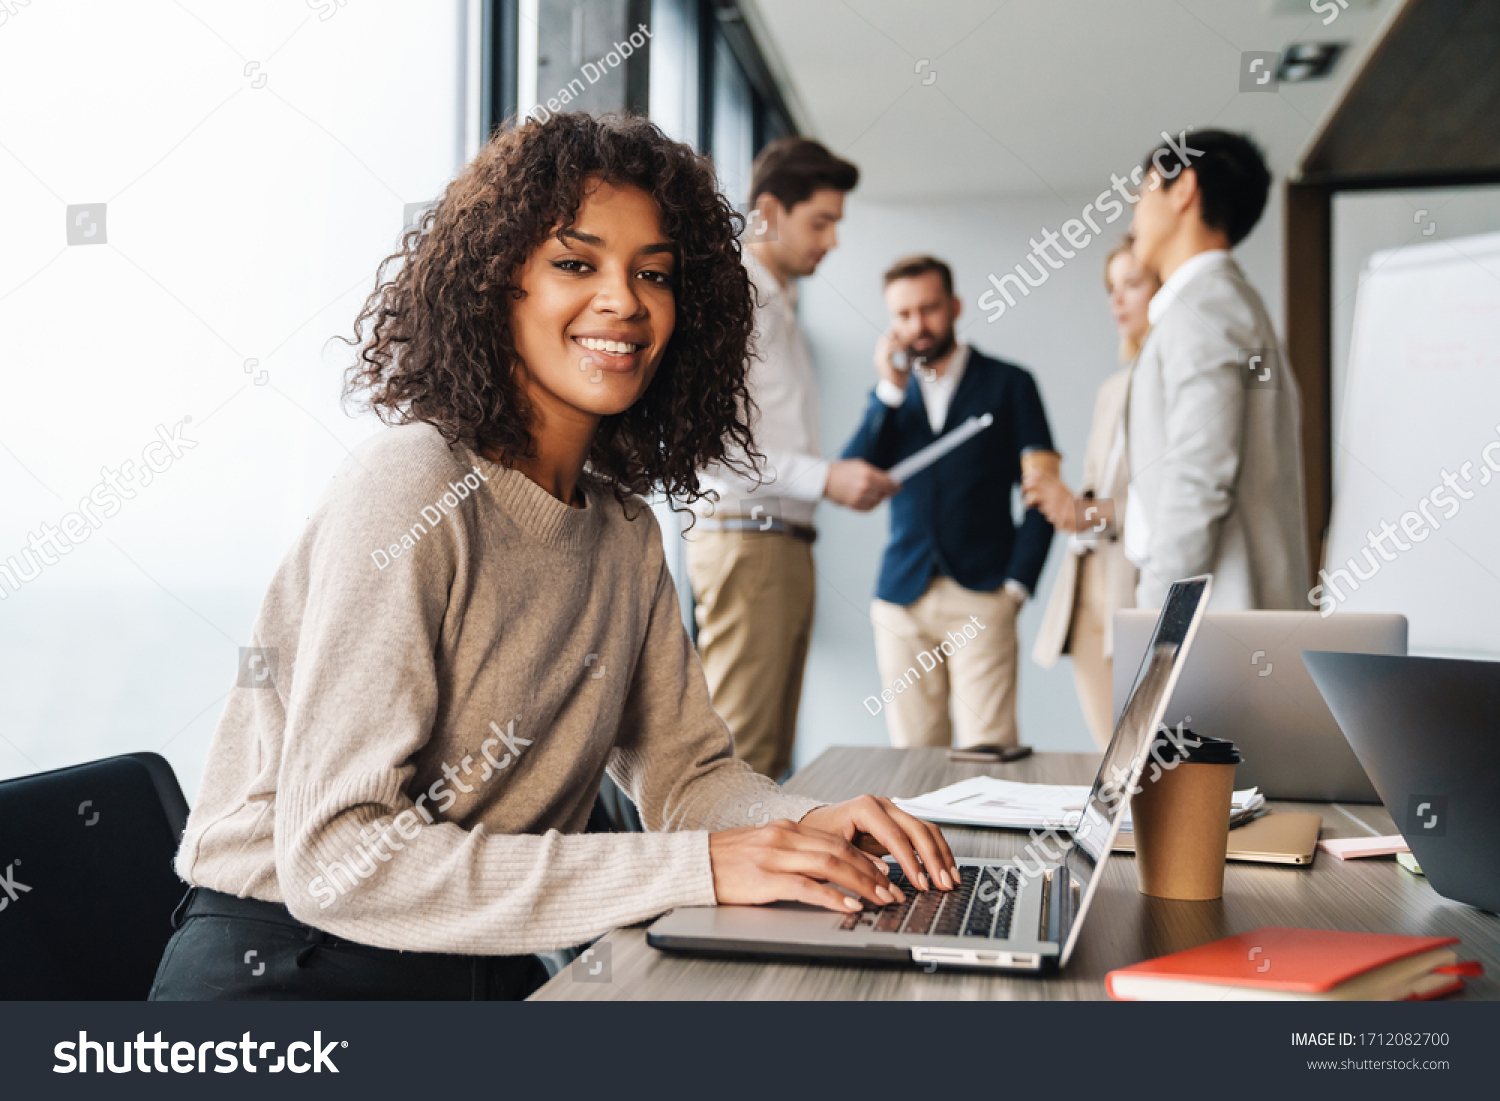 Attractive african young confident businesswoman sitting at the office table with group of colleagues in the background, working on laptop computer #1712082700